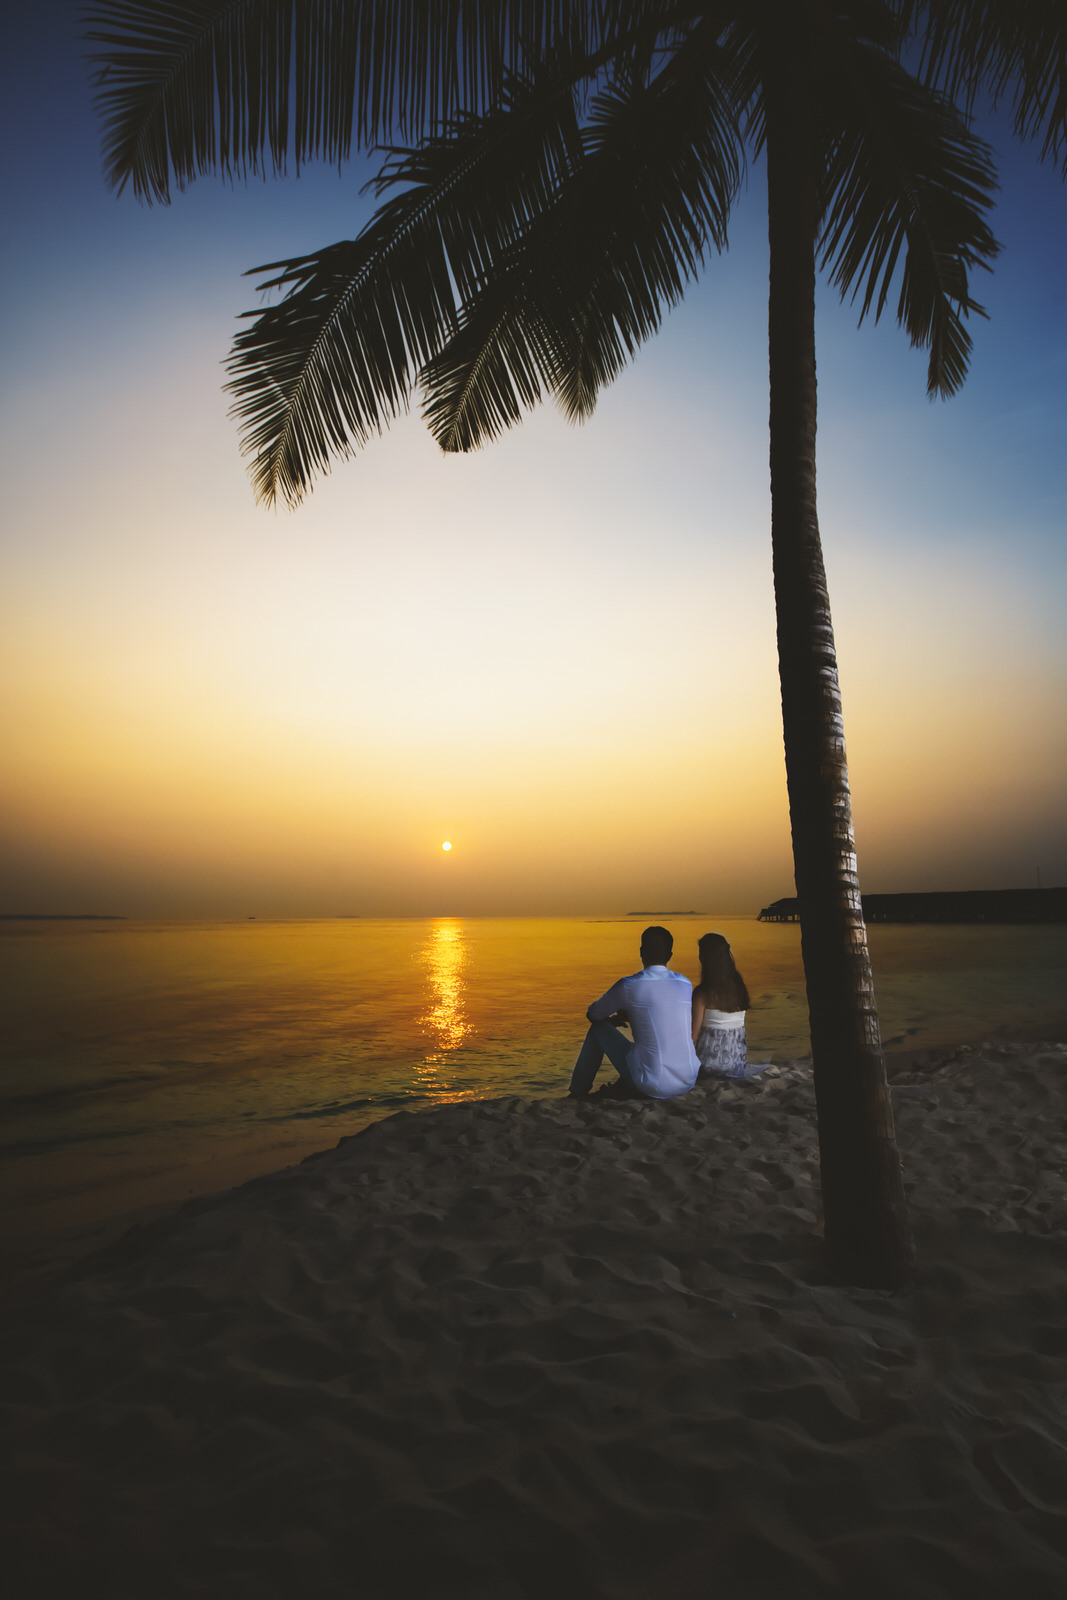 holiday romance sunset photography in islands of maldives